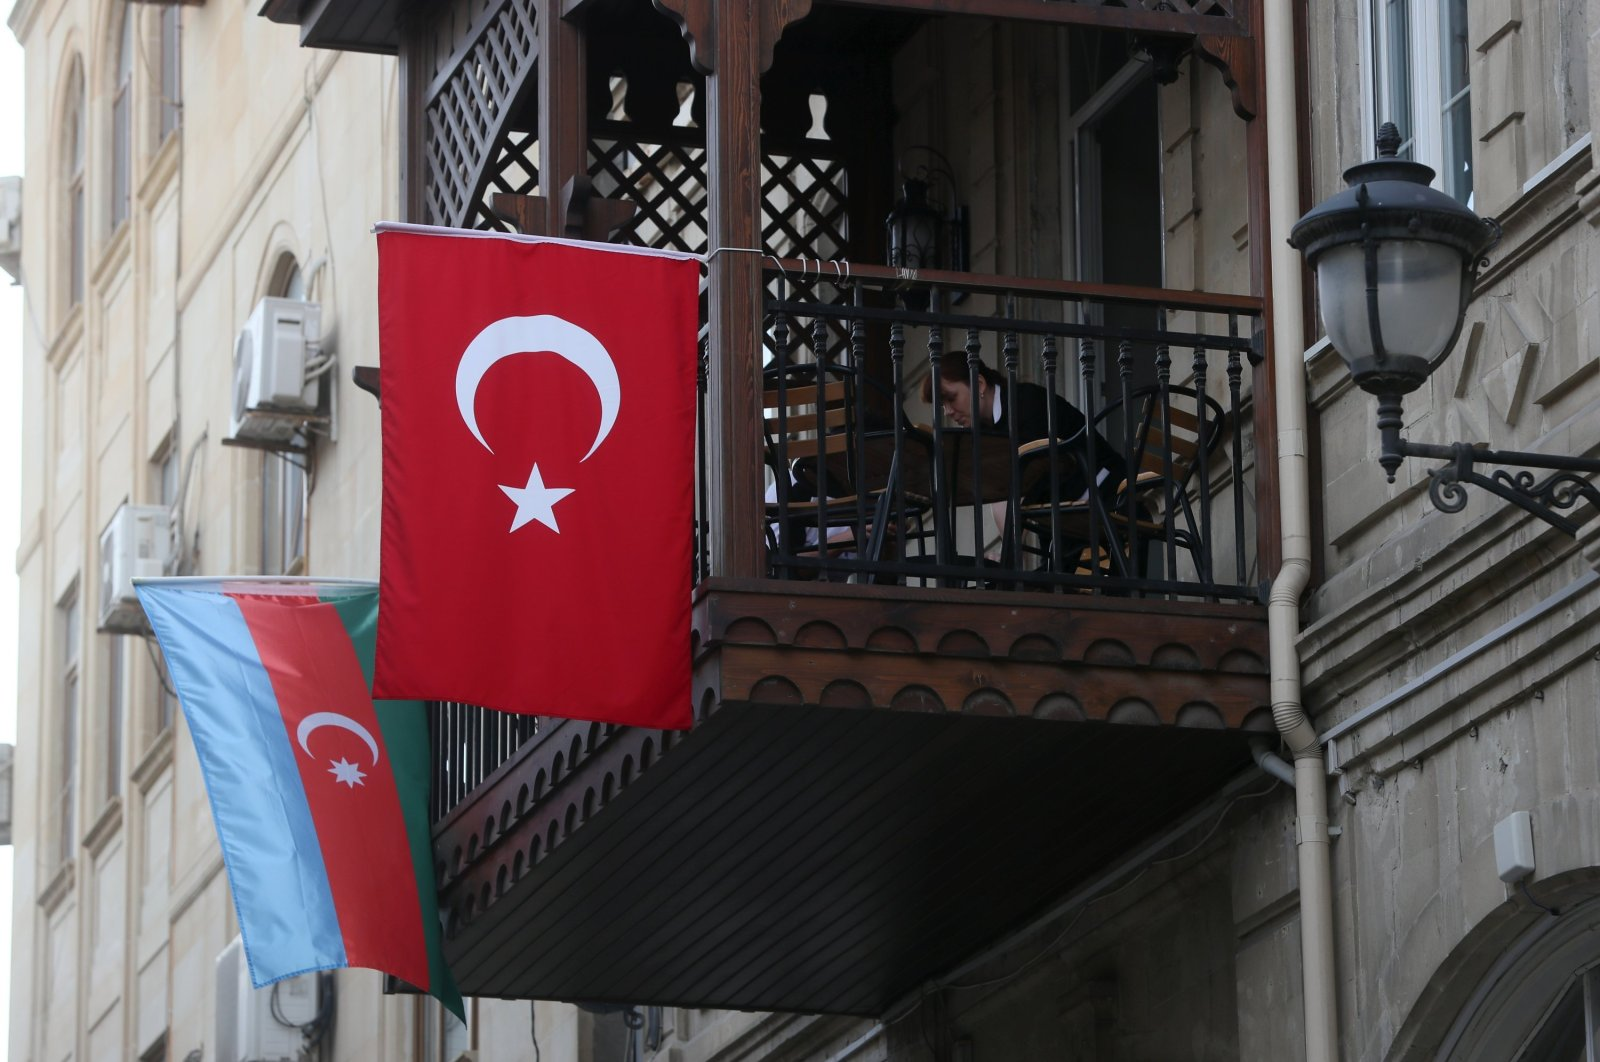 The national flags of Turkey and Azerbaijan hang from a balcony in Baku, Azerbaijan, Oct. 23, 2020. (Photo by Getty Images)